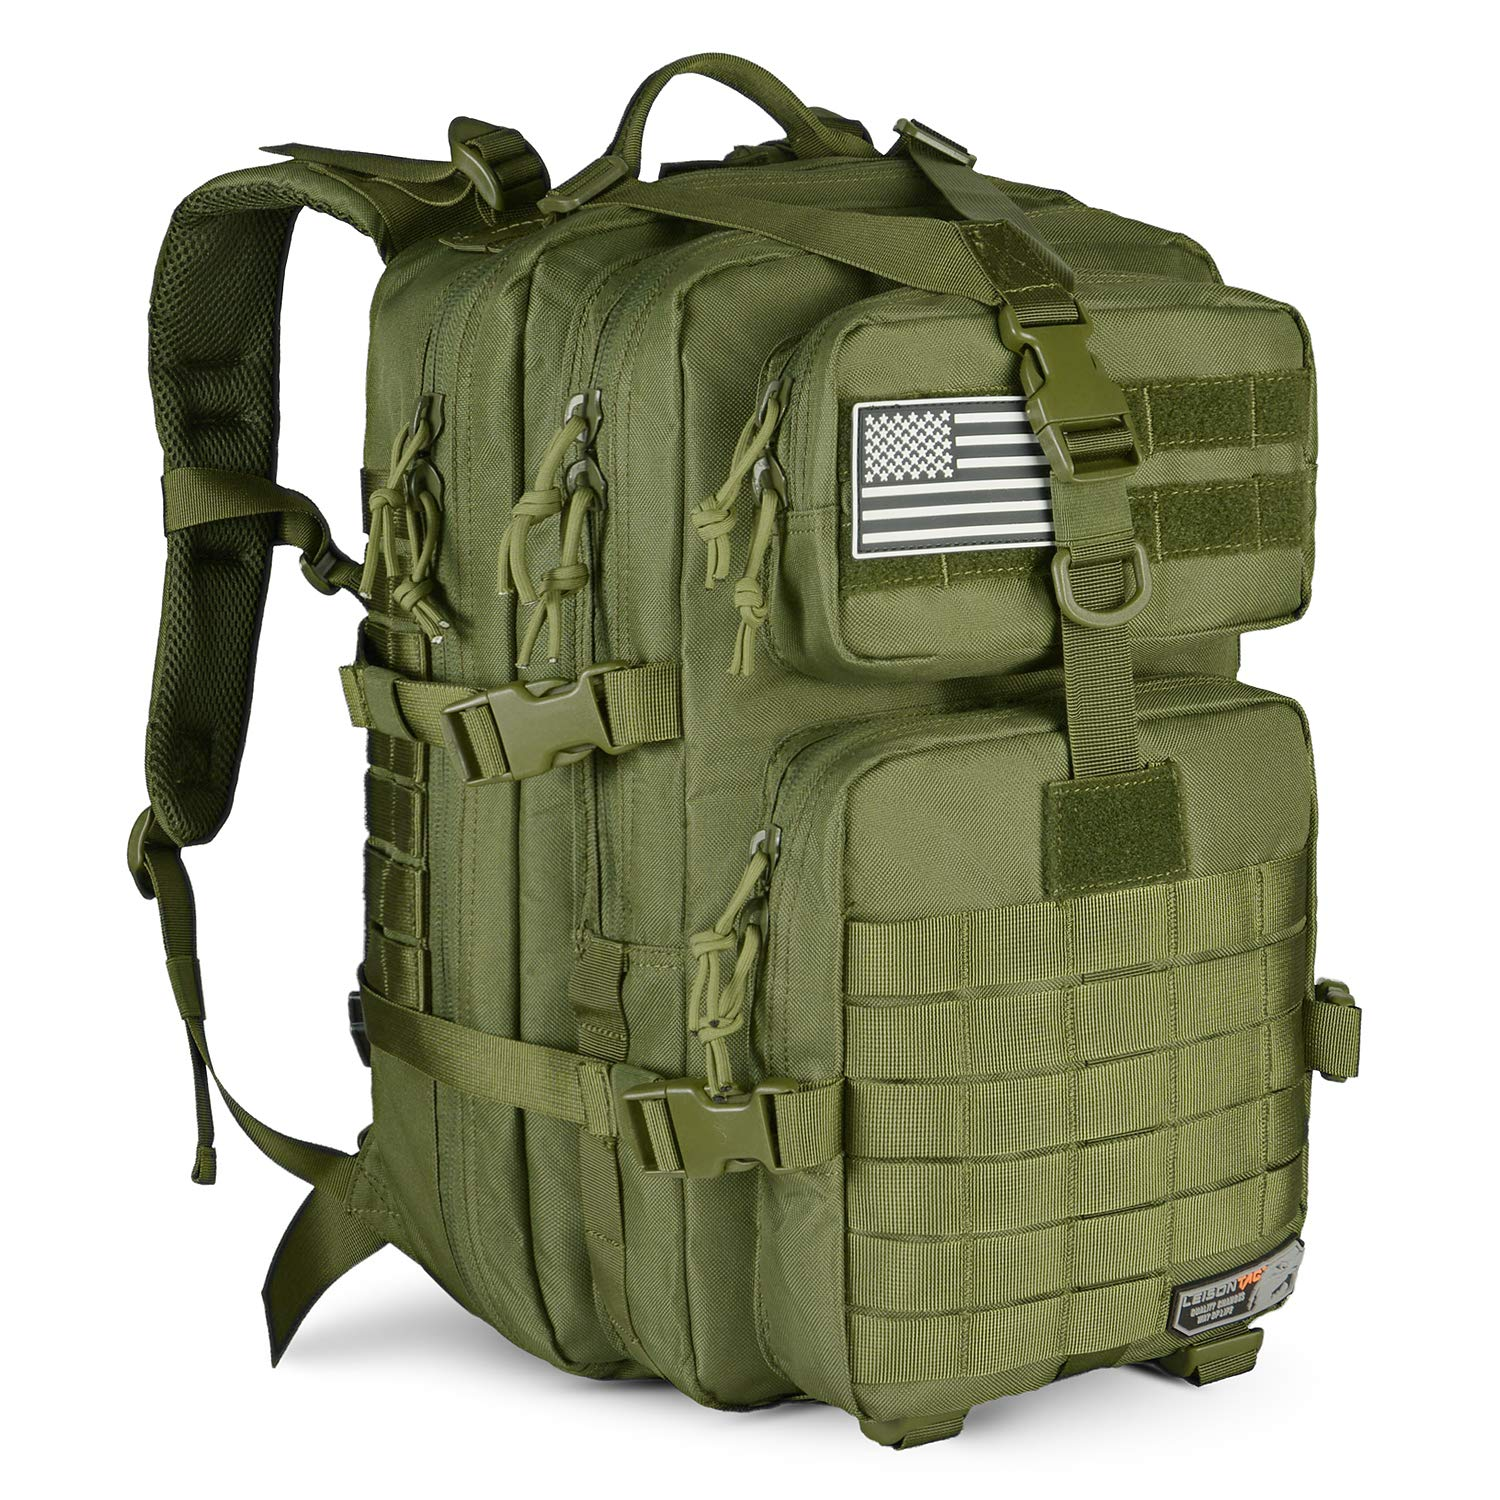 LeisonTac Tactical Back Pack Military ISO Standard for Hunting Hiking Travel & Camping   Heavy Duty Nylon Stitching Water Resistant Small Rucksack with Hydration Bladder Compartment (O.D.Green)